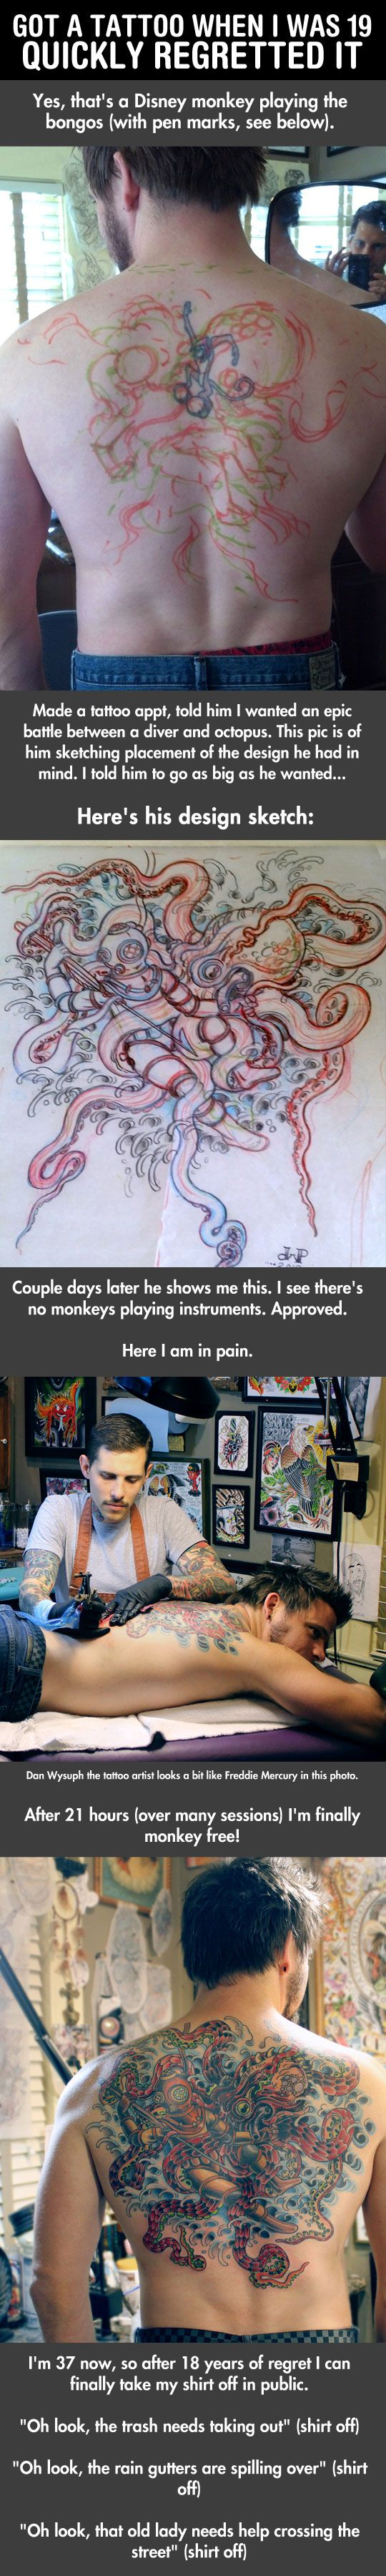 Hahah this is awesome!! :) Just look at it like this guy did, one bad tattoo= one awesome cover up later with a better tattoo!!